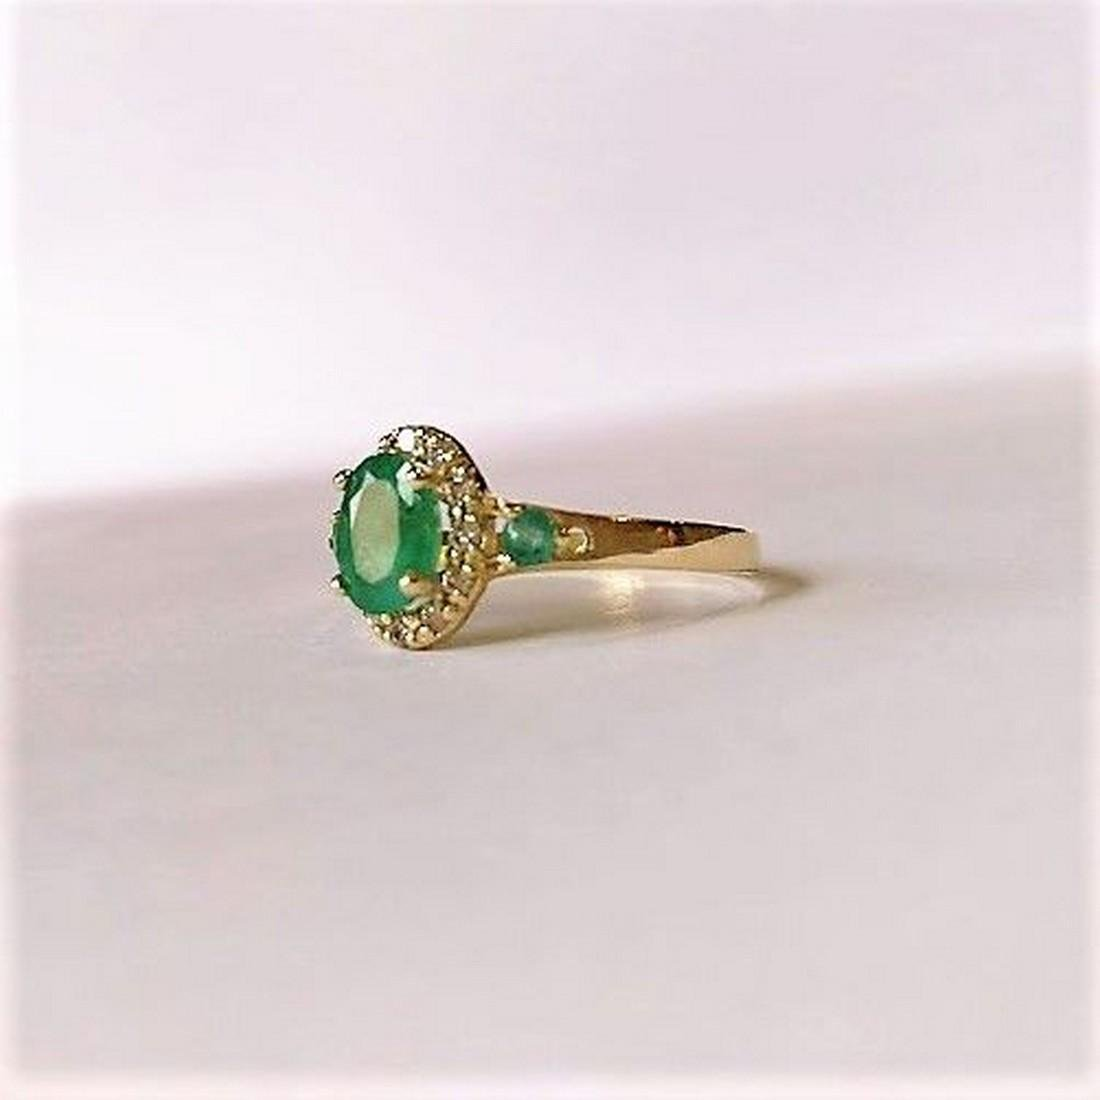 New Emerald Ring with 12 Diamonds 14k Gold Made in - 4